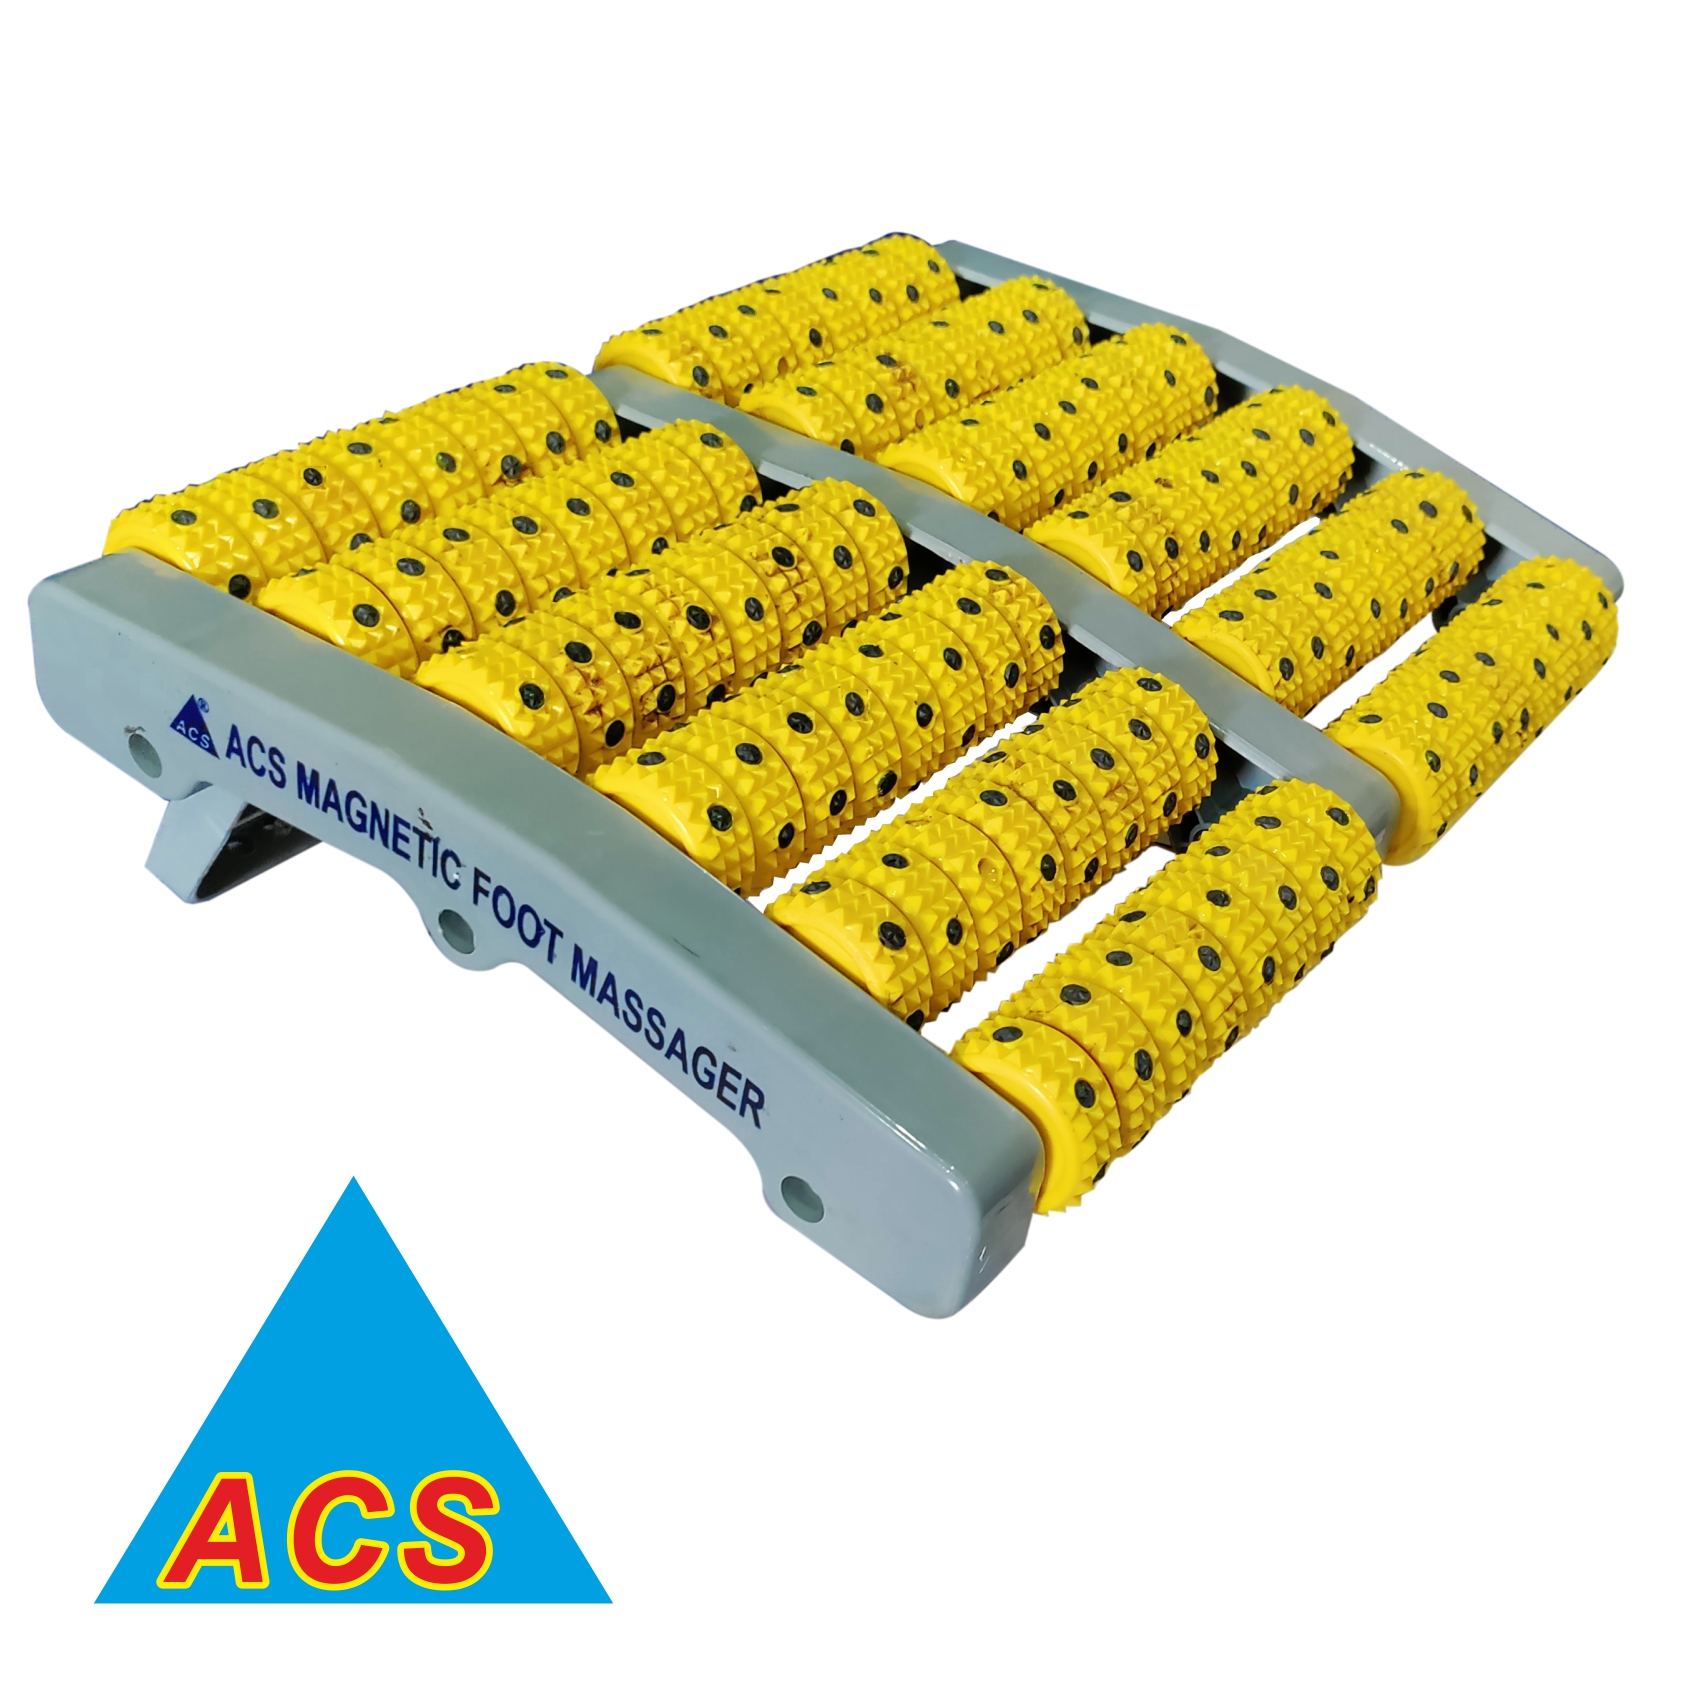 ACS Magnetic Foot Massager - Pyramidal  - 114